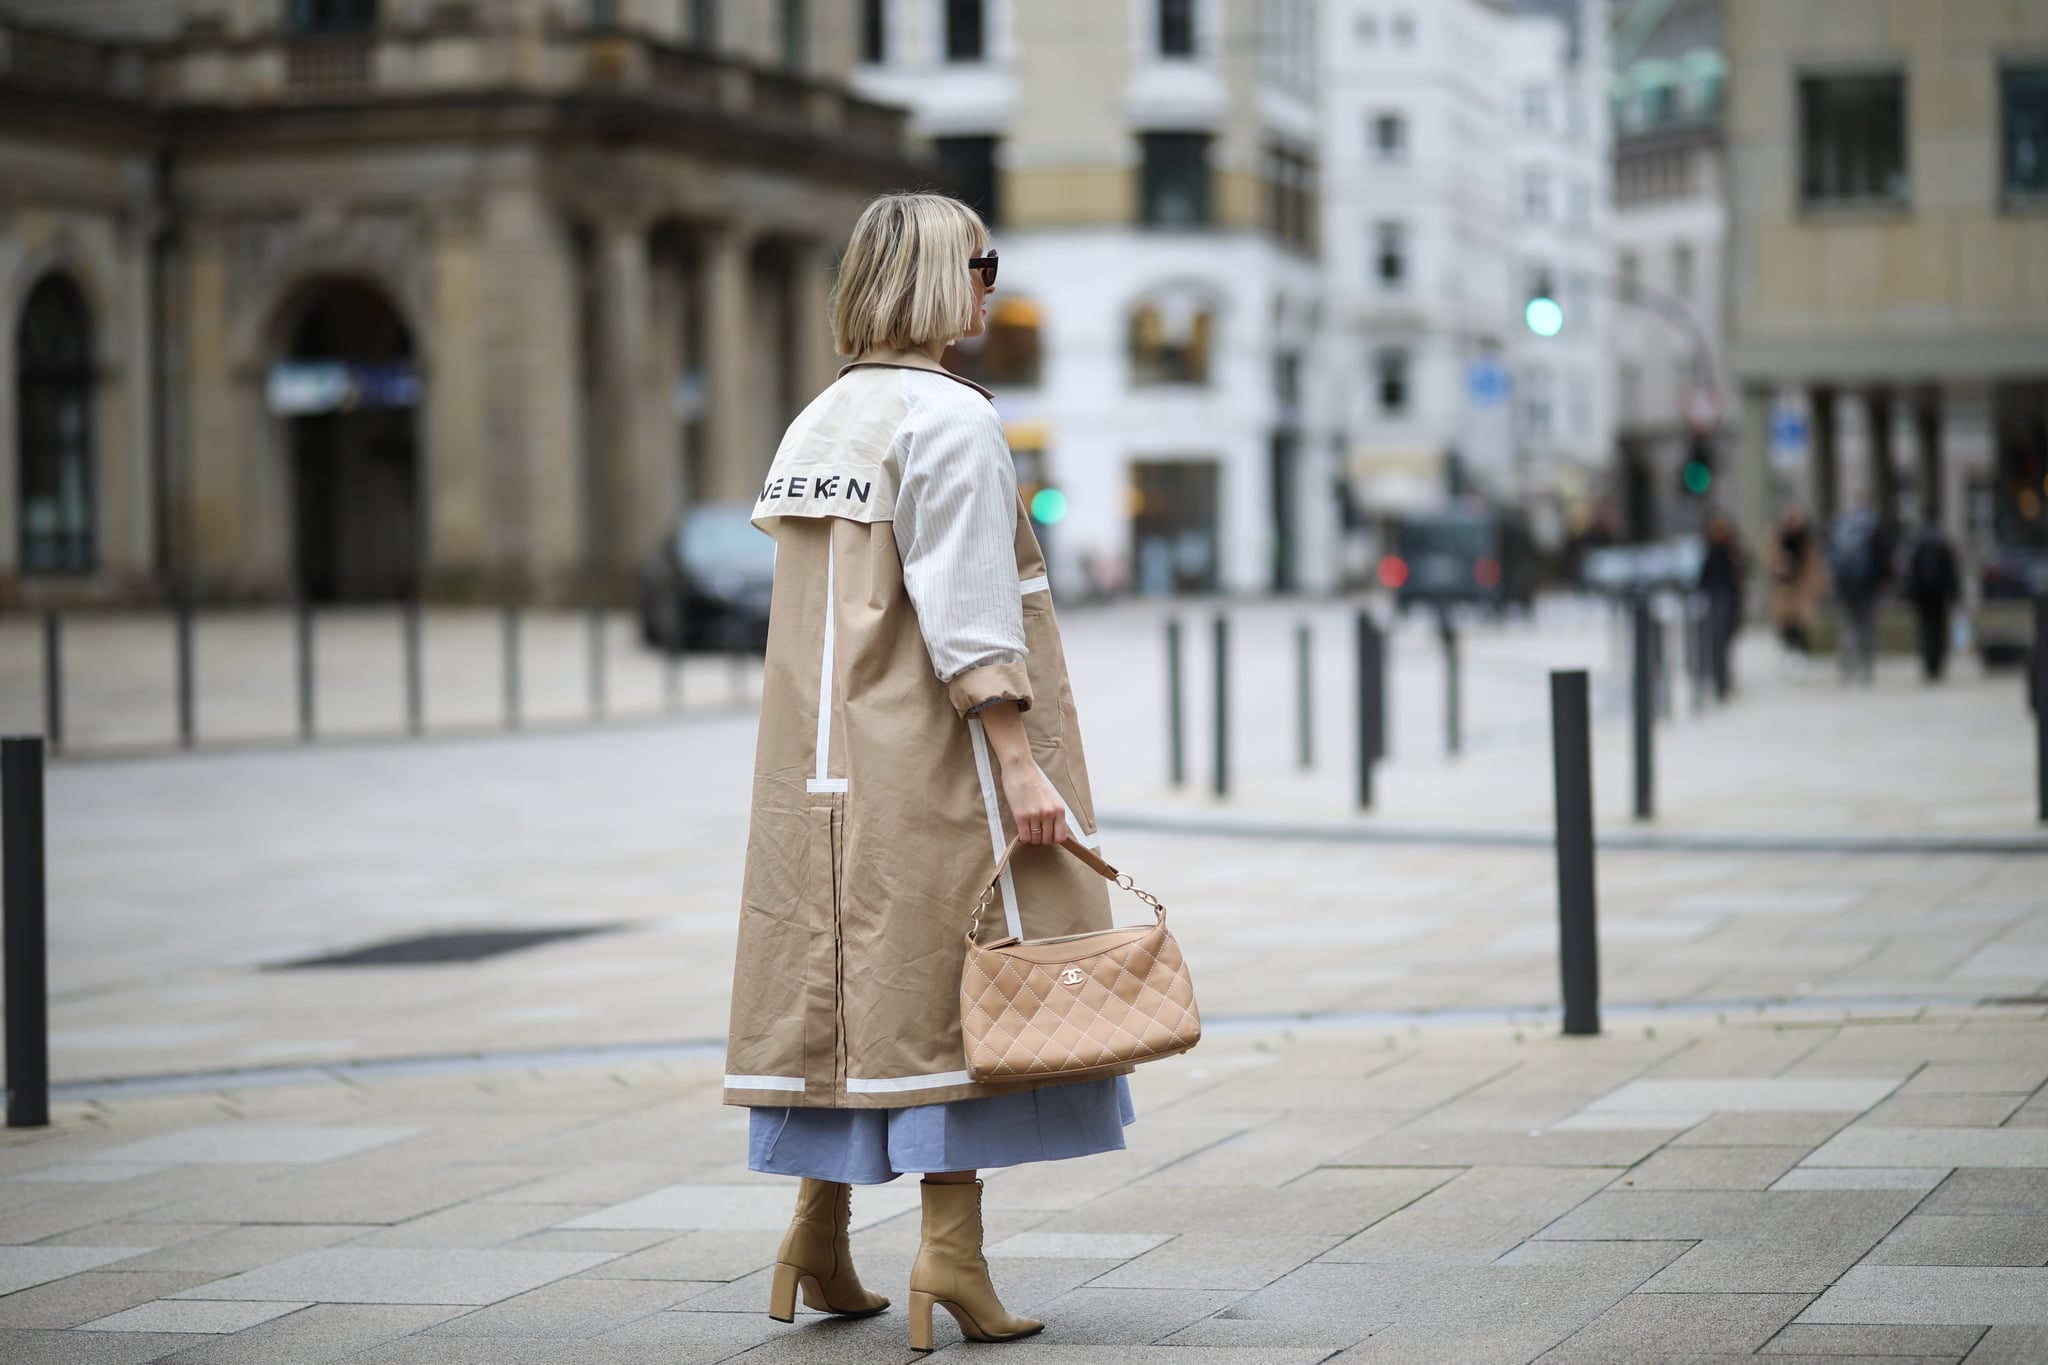 HAMBURG, GERMANY - FEBRUARY 01: Louisa Theresa Grass wearing Ghospell dress, Chanel bag, Max Mara coat and Zara boots on February 01, 2020 in Hamburg, Germany. (Photo by Jeremy Moeller/Getty Images)